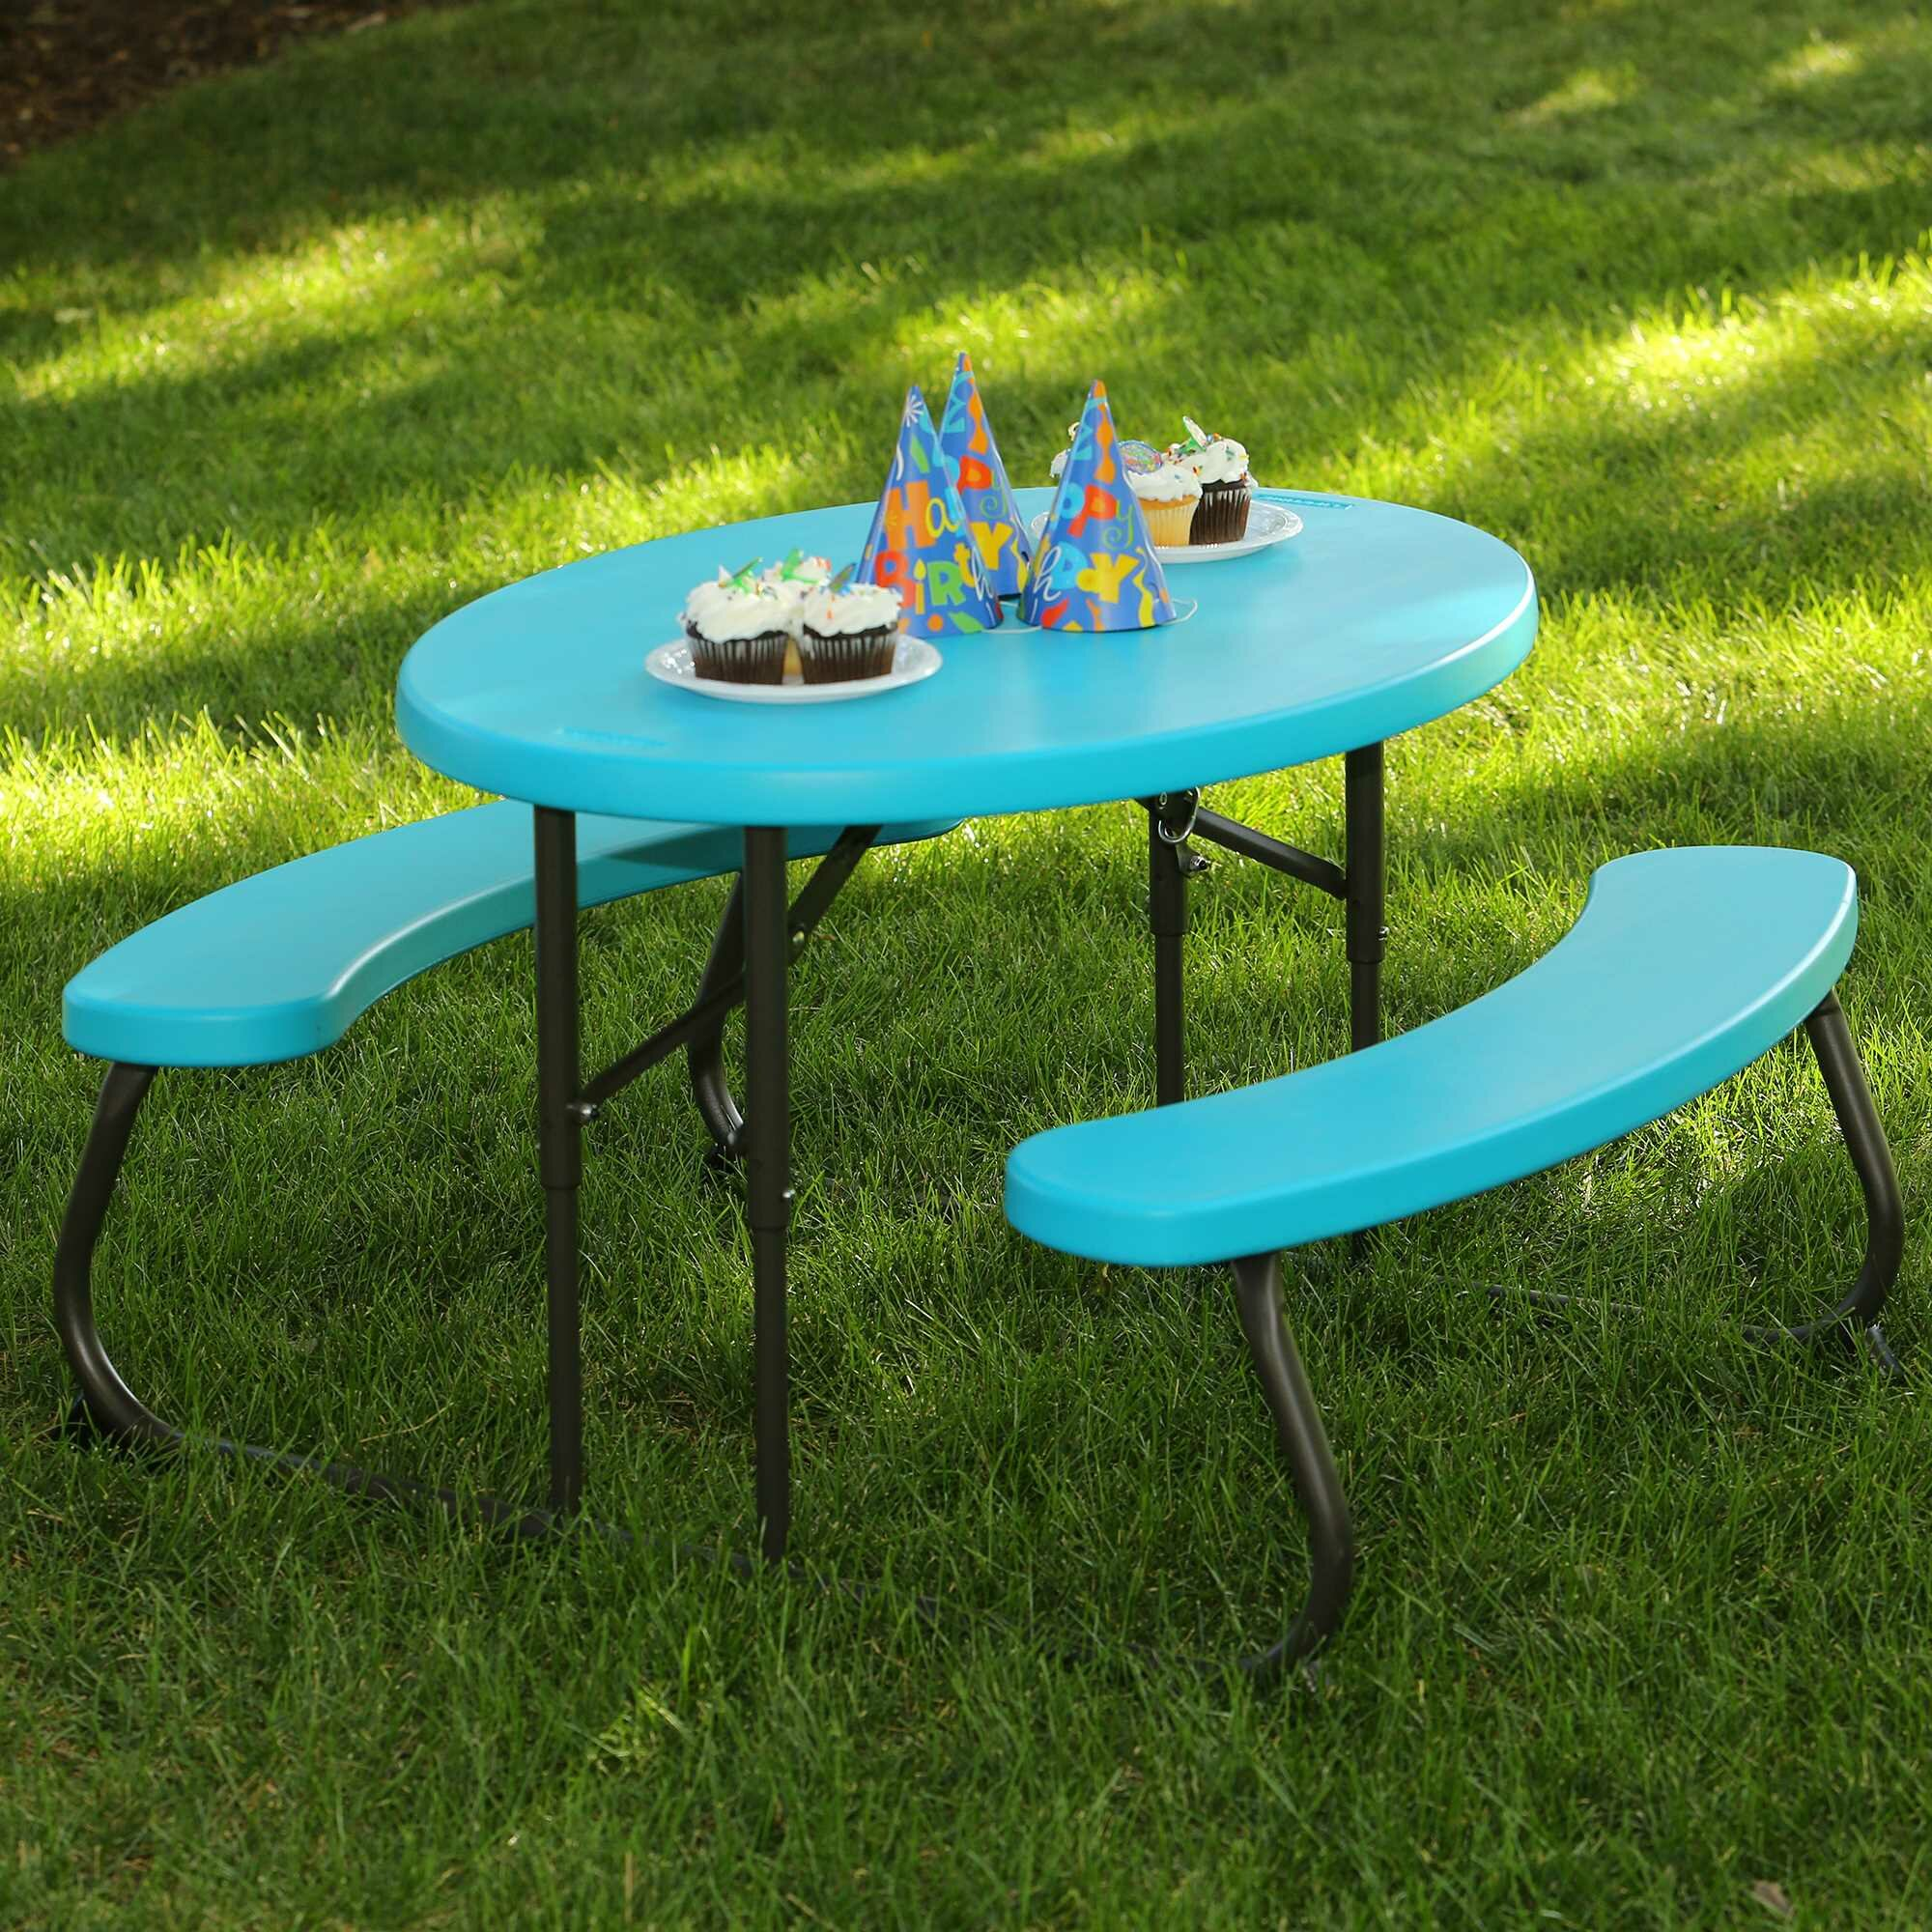 Lifetime 3 Piece Oval Picnic Table and Bench Set Wayfairca : Lifetime 3 Piece Oval Picnic Table and Bench Set from www.wayfair.ca size 2000 x 2000 jpeg 555kB